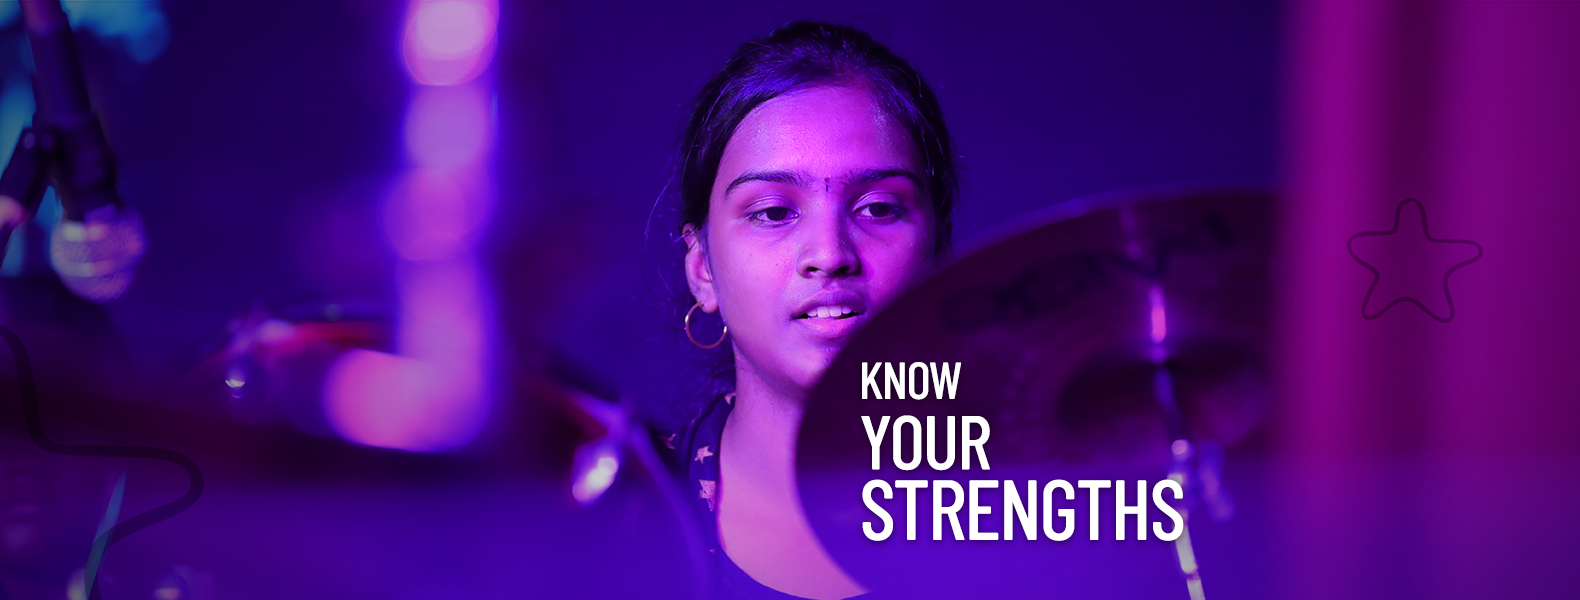 know your strengths - TIPS